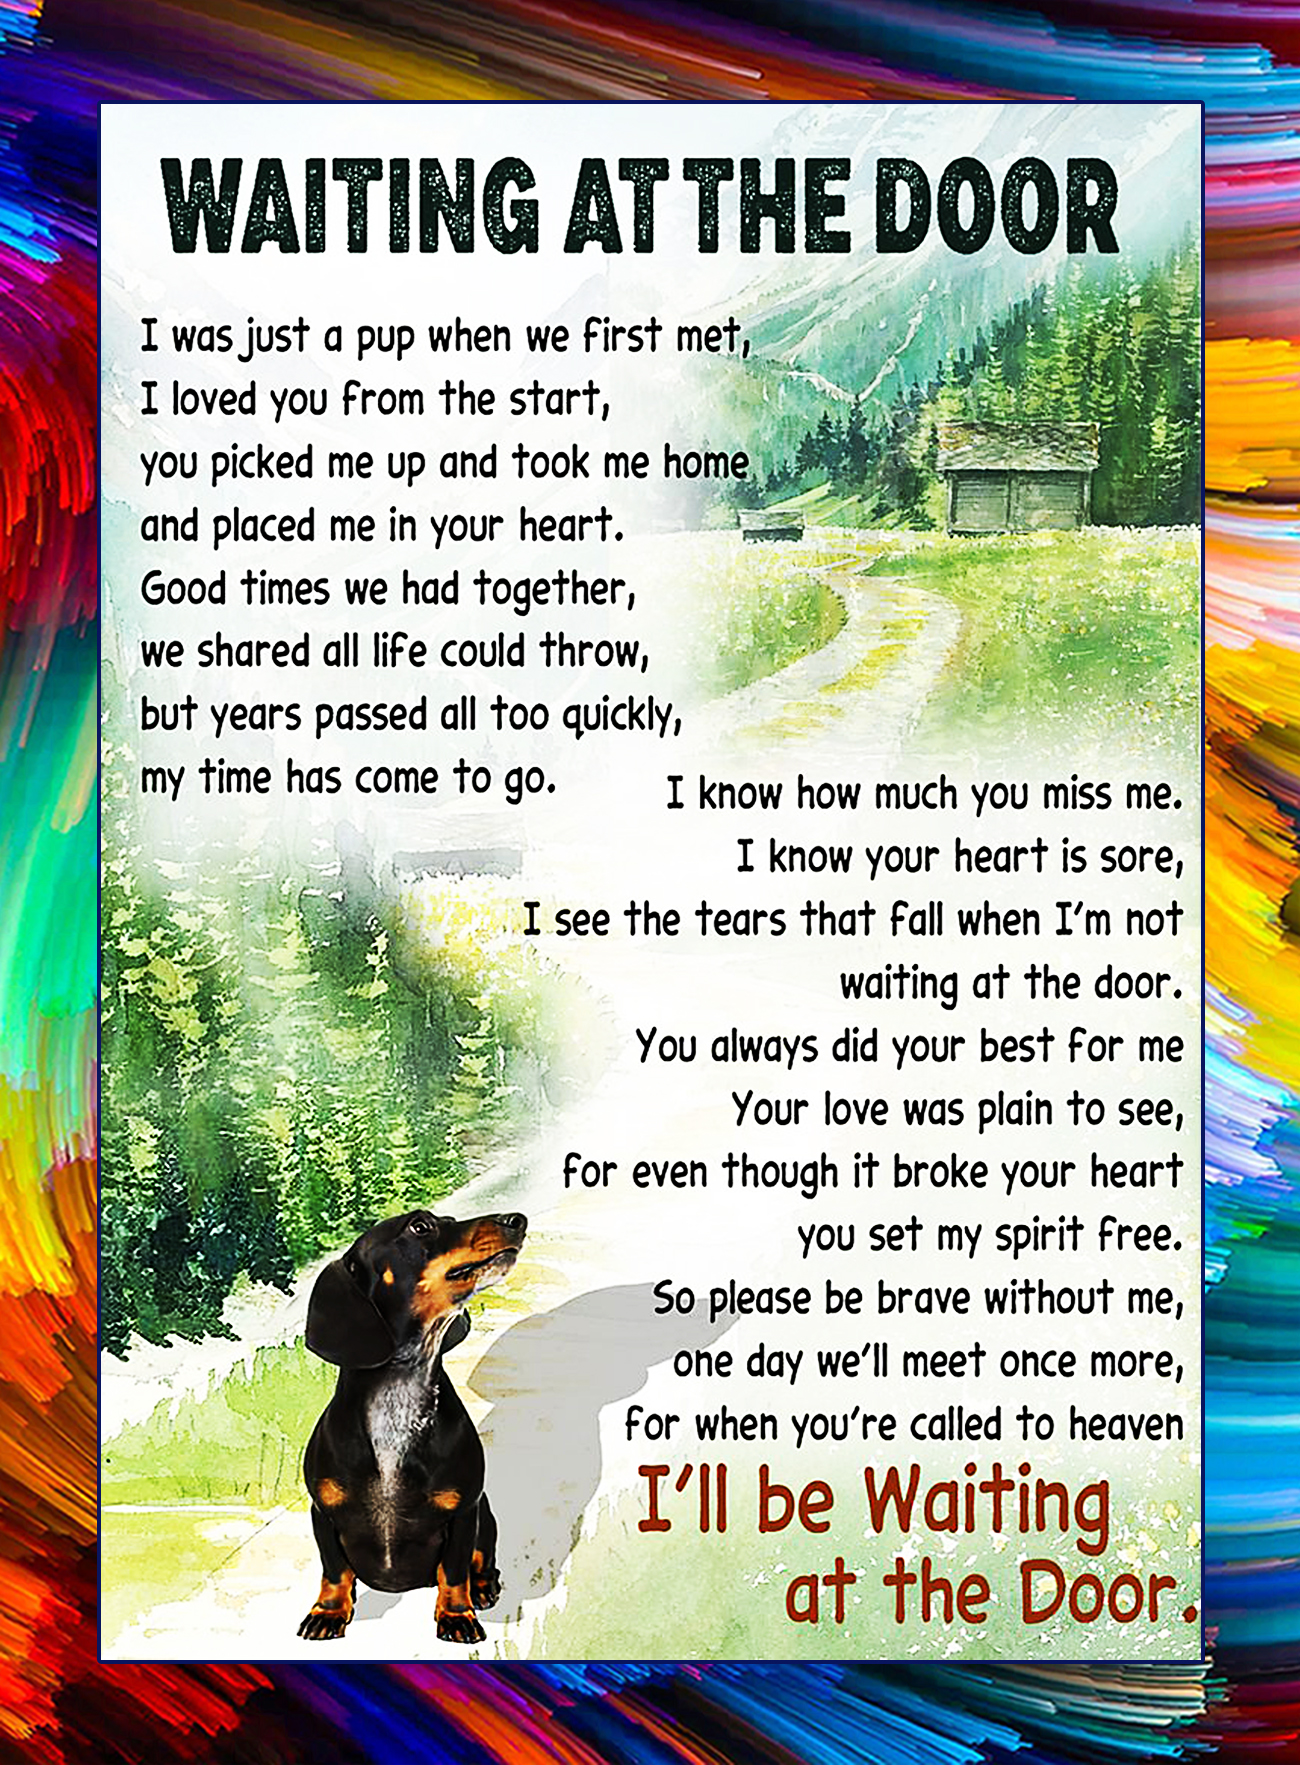 Dachshund waiting at the door poster - A4